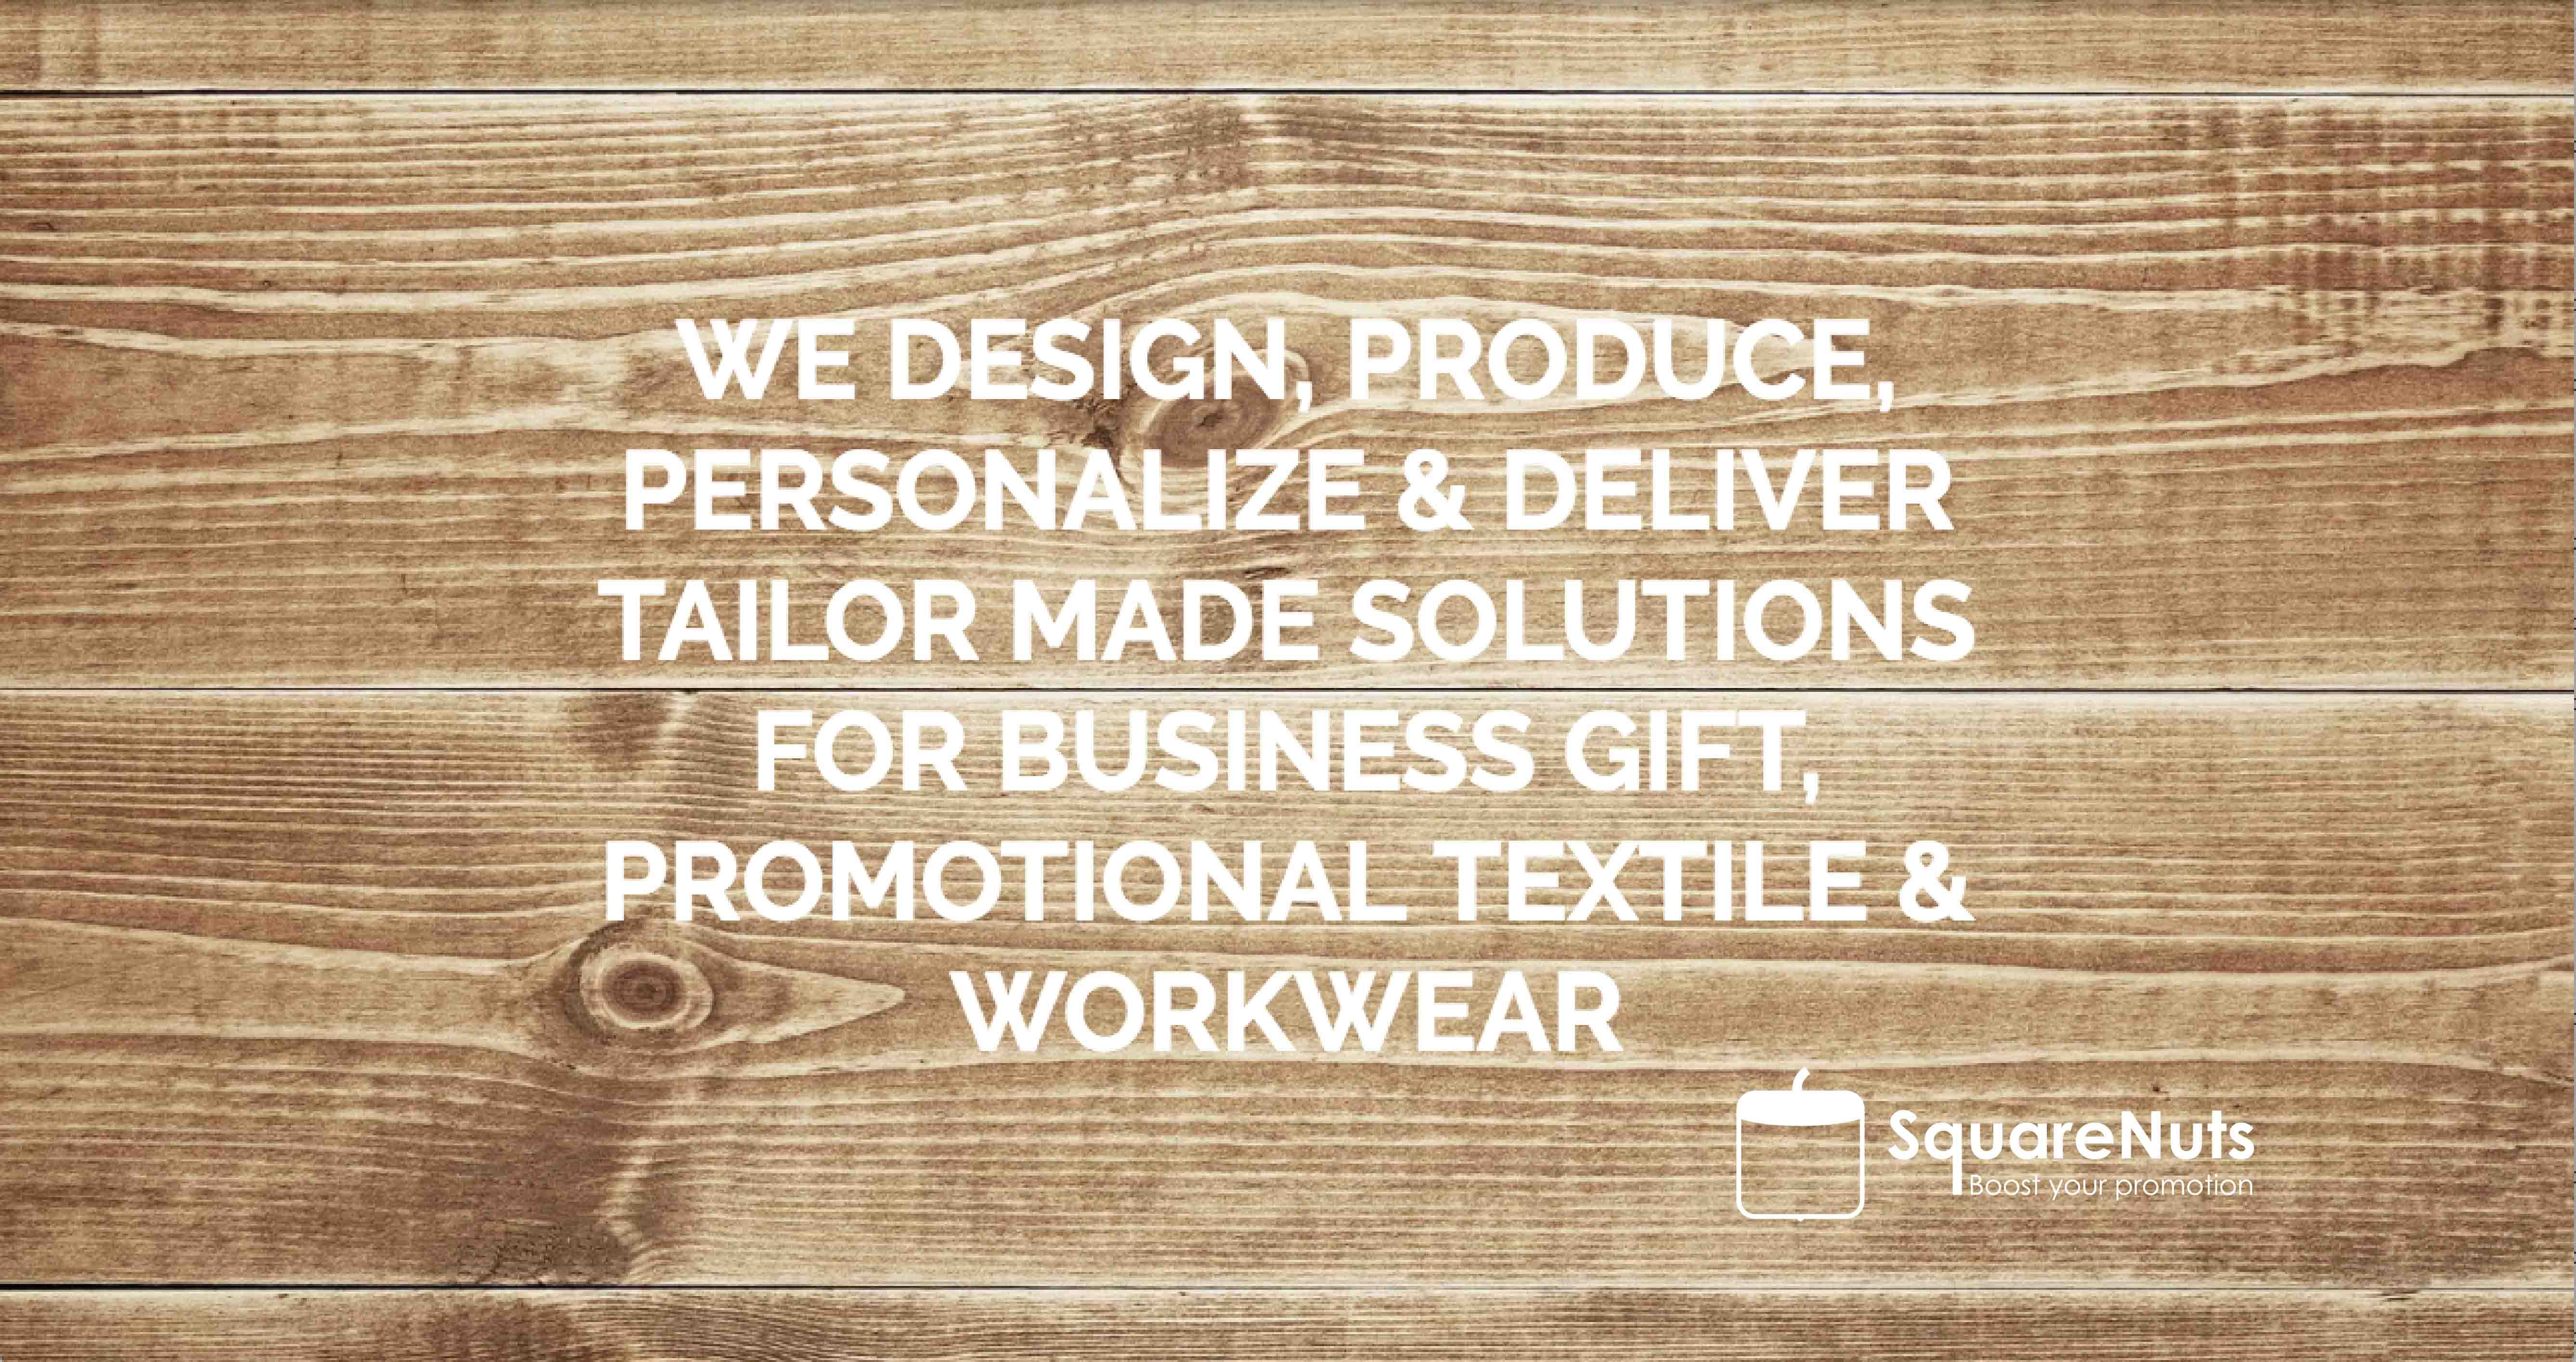 squarenuts-business-gifts-promotional-textile-workwear